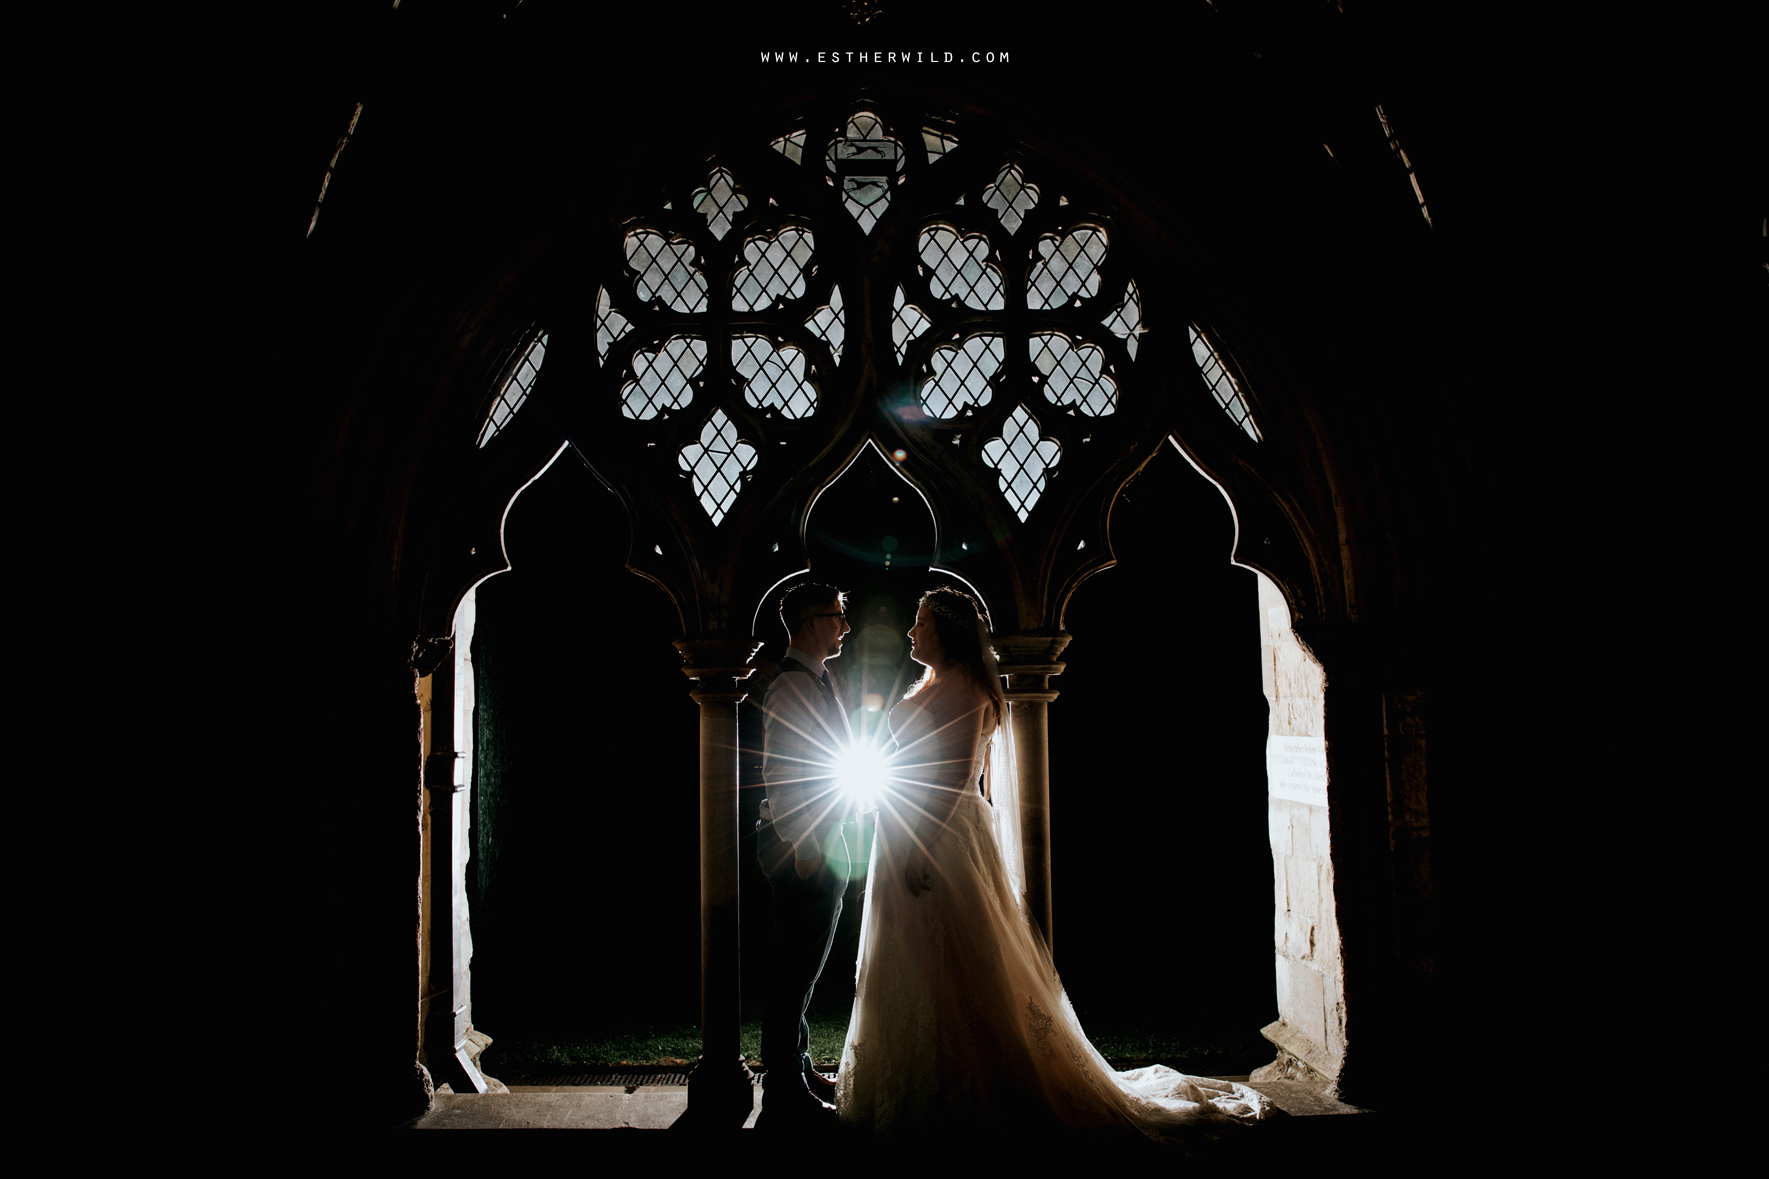 Norwich_Castle_Arcade_Grosvenor_Chip_Birdcage_Cathedral_Cloisters_Refectory_Wedding_Photography_Esther_Wild_Photographer_Norfolk_Kings_Lynn_3R8A3675-1.jpg